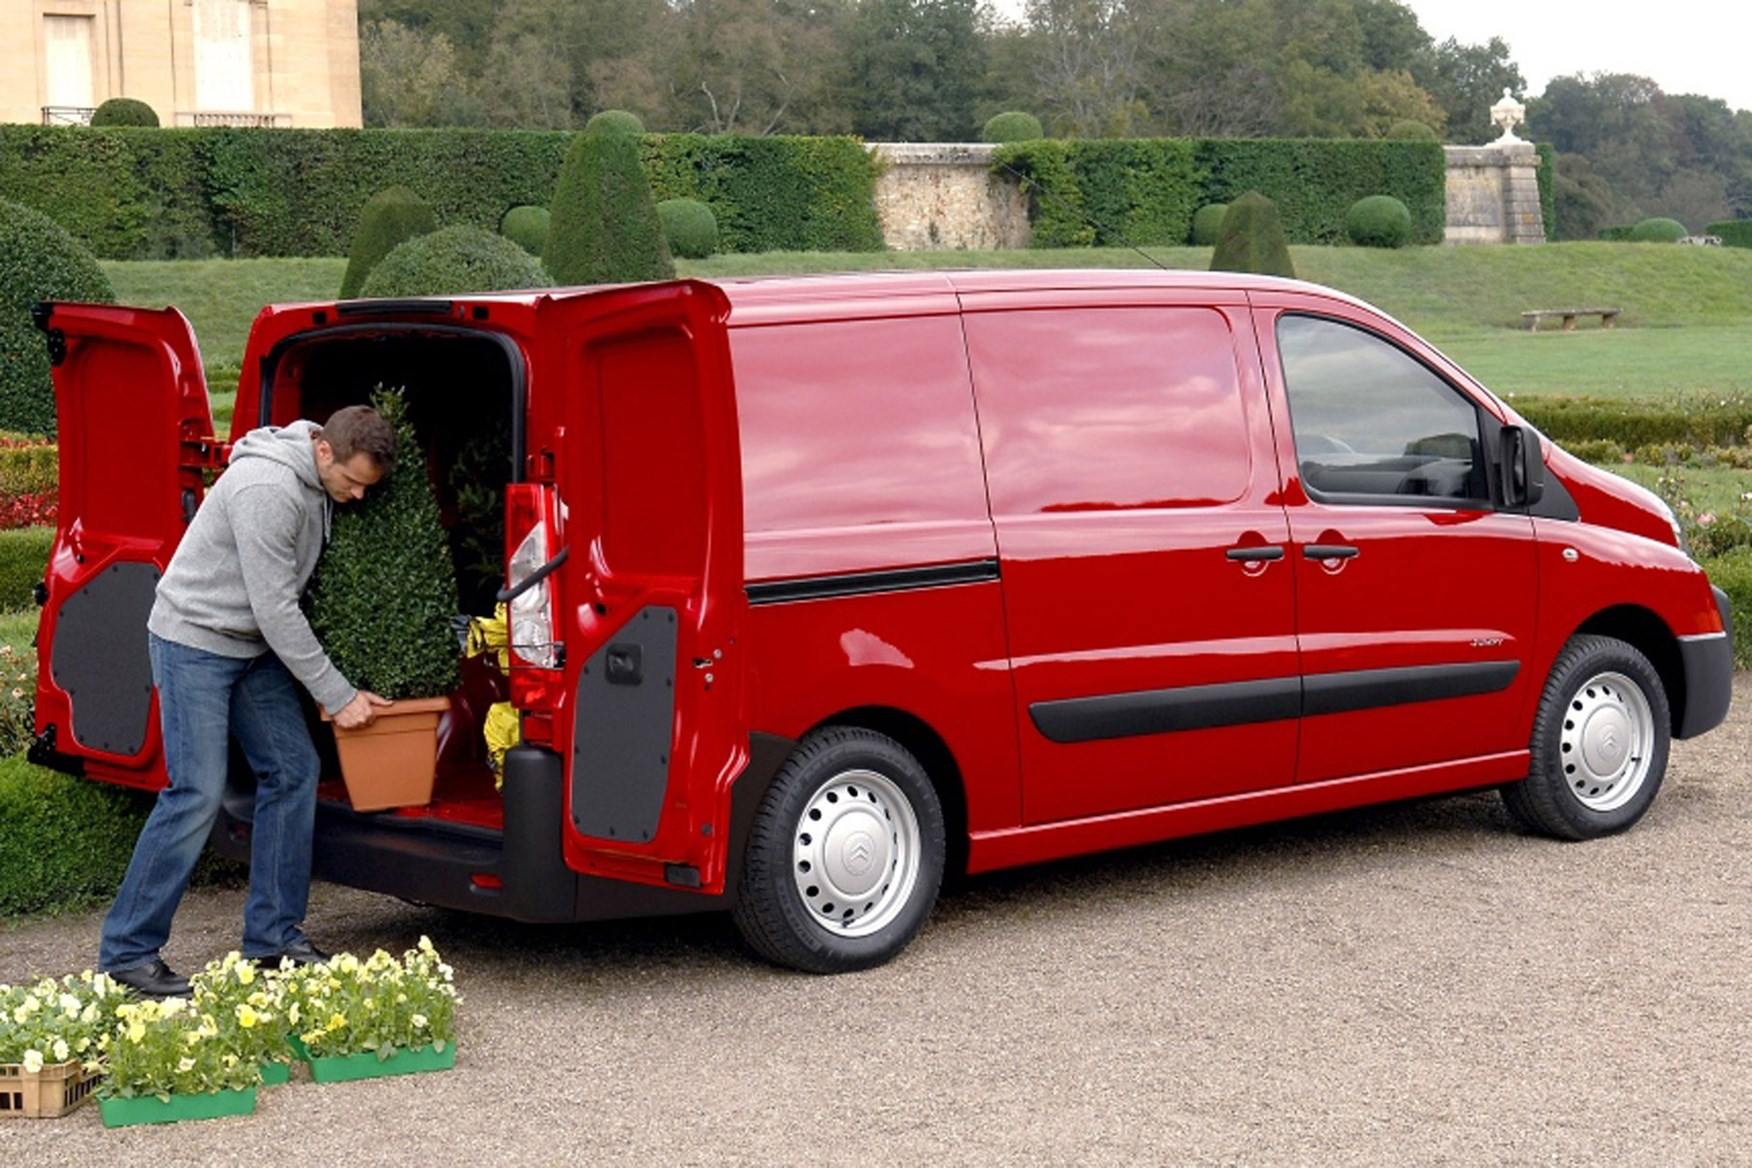 Citroen Dispatch full review on Parkers Vans - load area dimensions